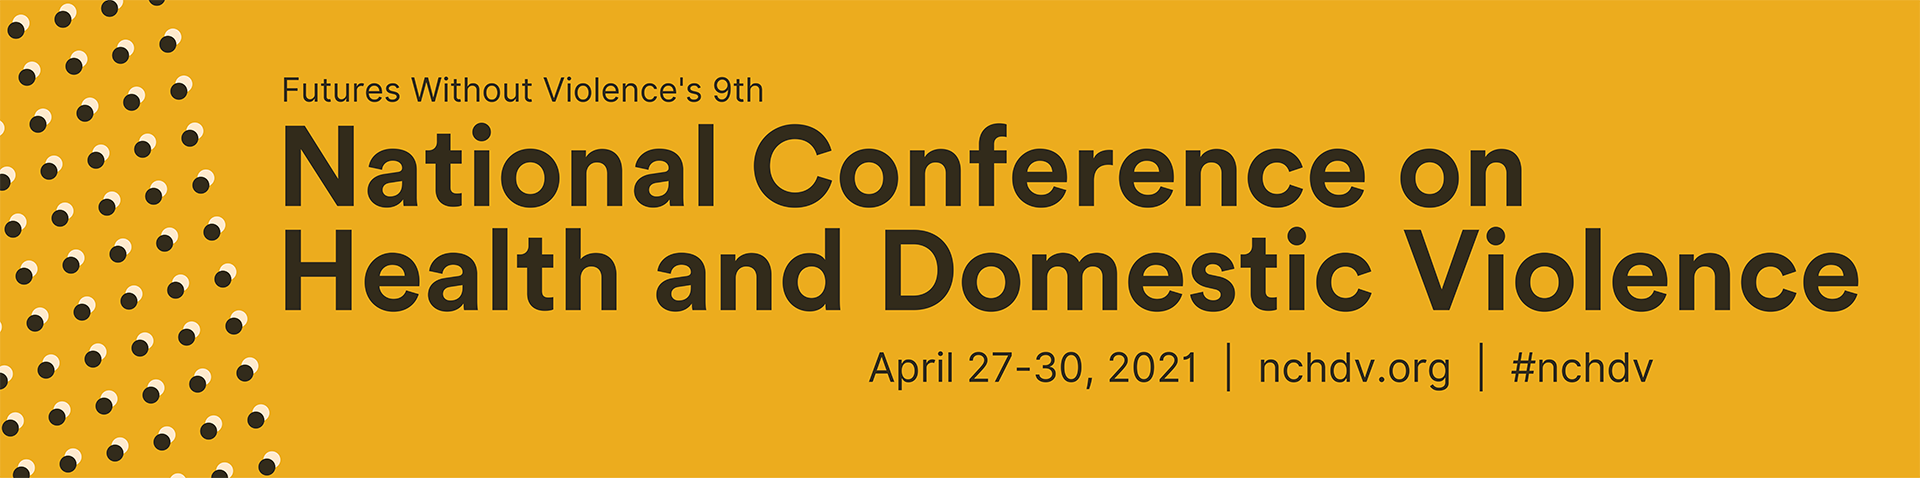 The National Conference on Health and Domestic Violence